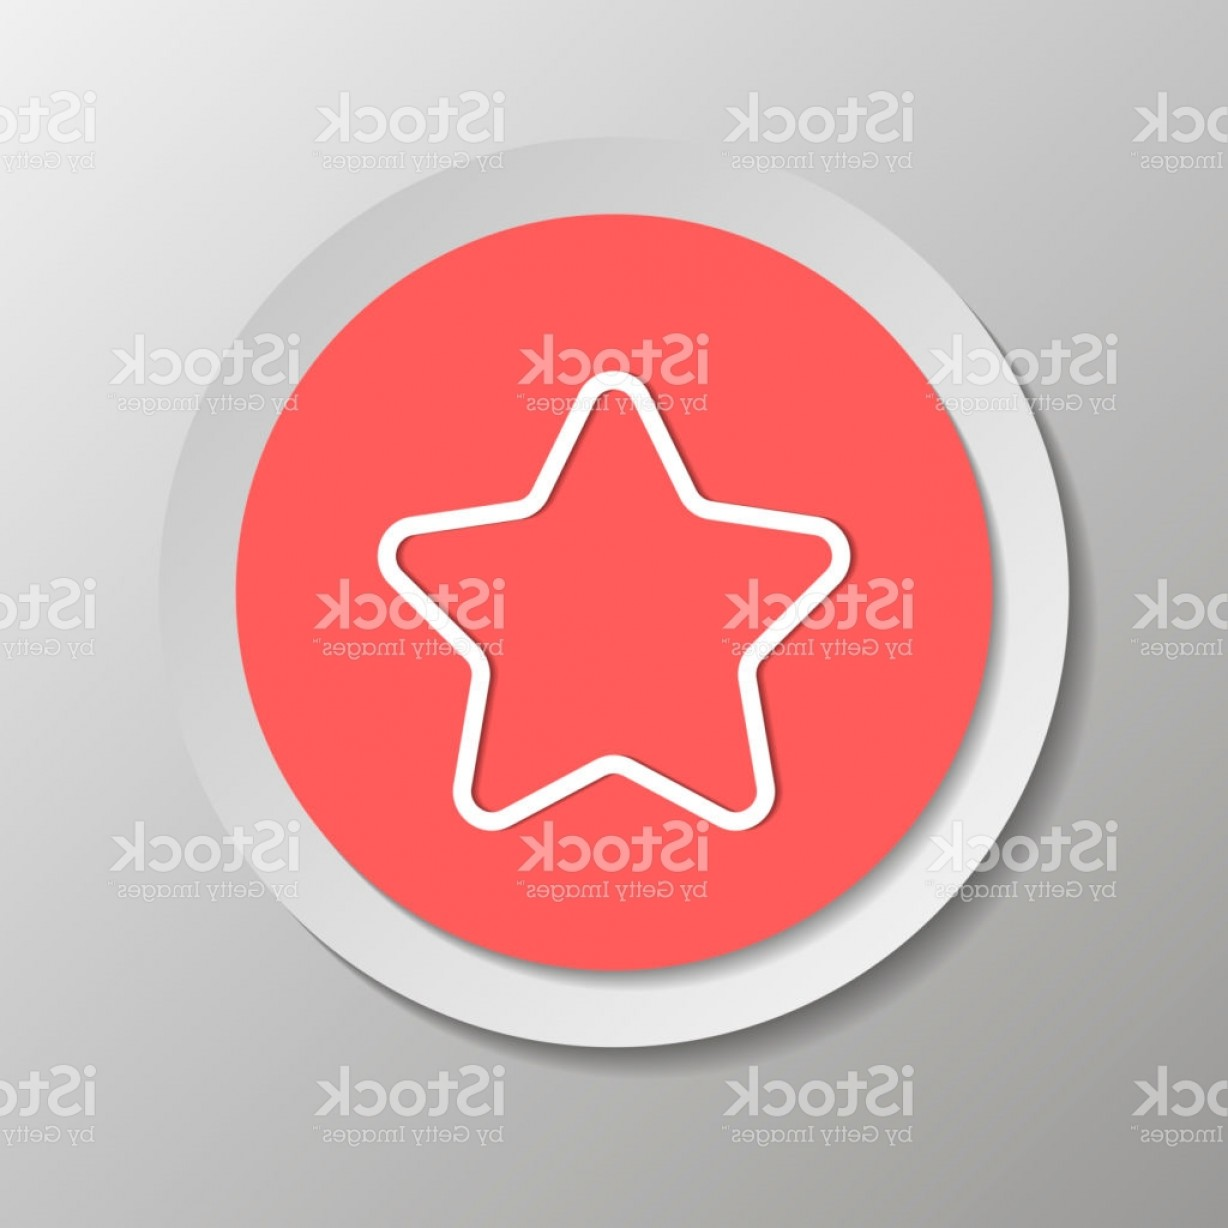 5 Point Star Vector Art: Vector Icon Five Pointed Star Vector Illustration On A Sticker With Shadow Design Gm